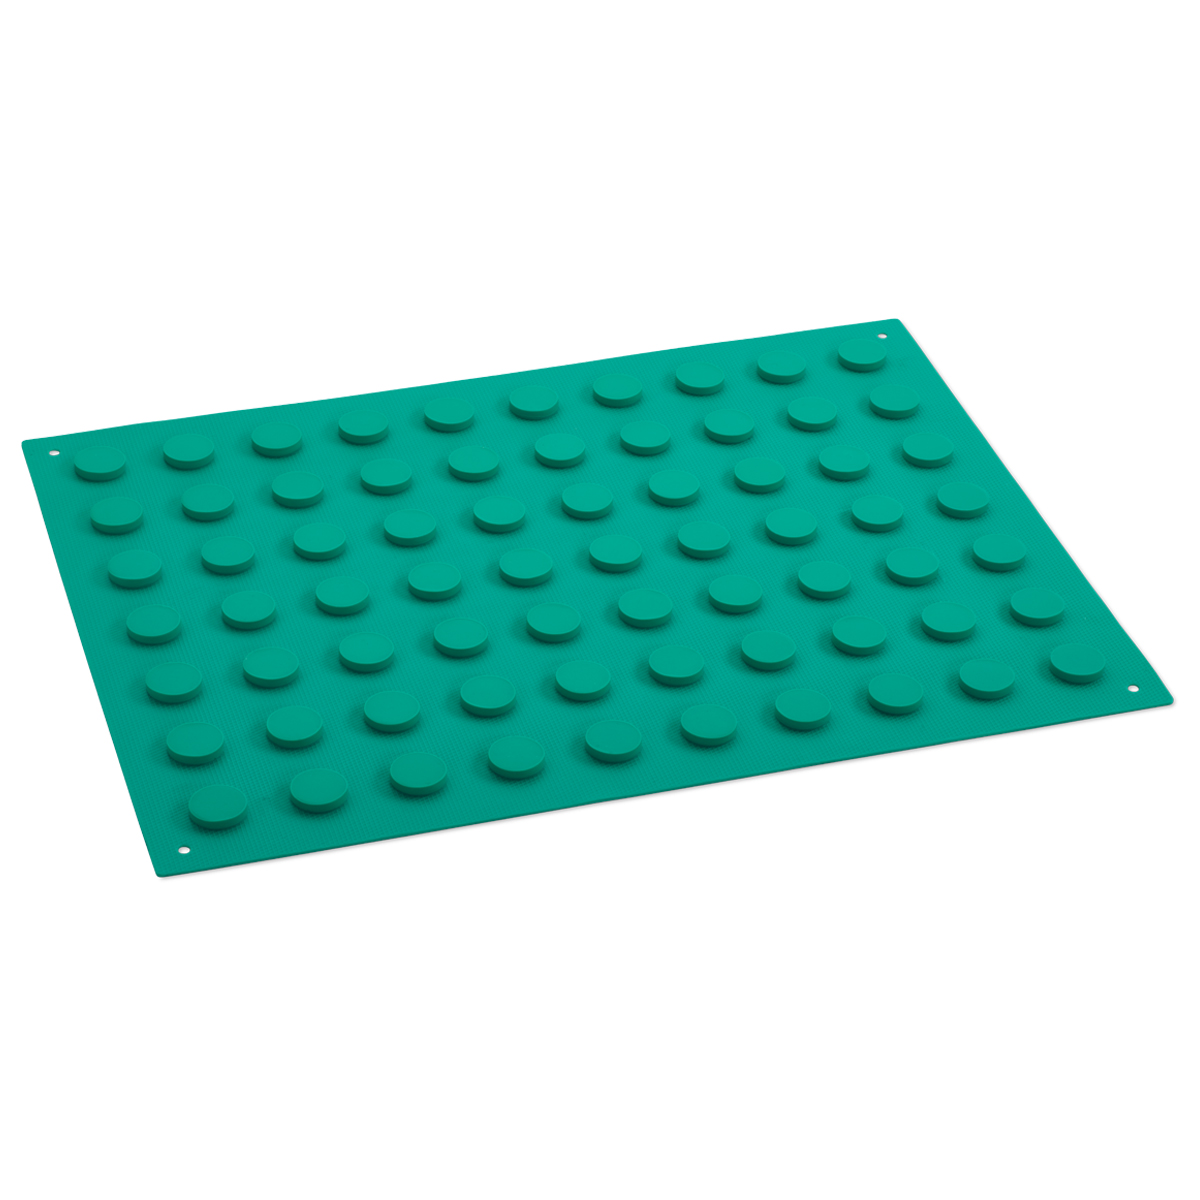 Magnetic Instrument Mat Image